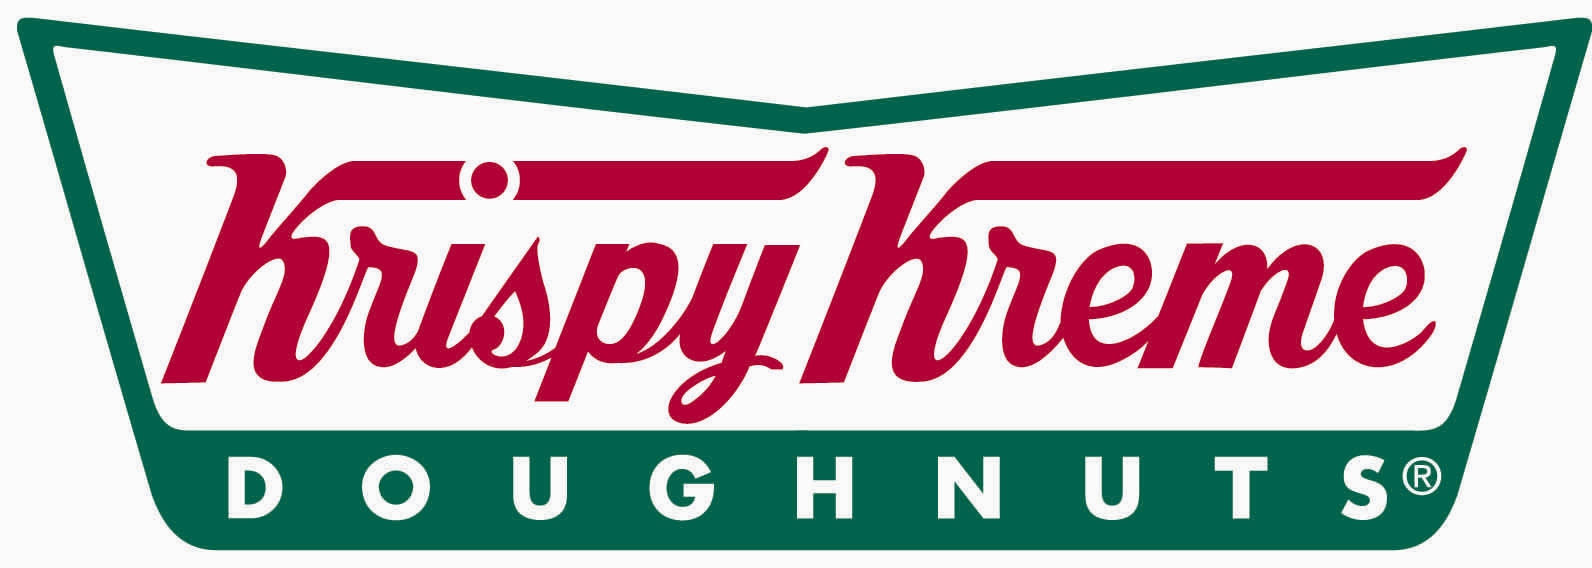 Kosher krispy kreme locations across the usa yeahthatskosher kosher krispy kreme locations across the usa yeahthatskosher kosher restaurants travel sciox Image collections